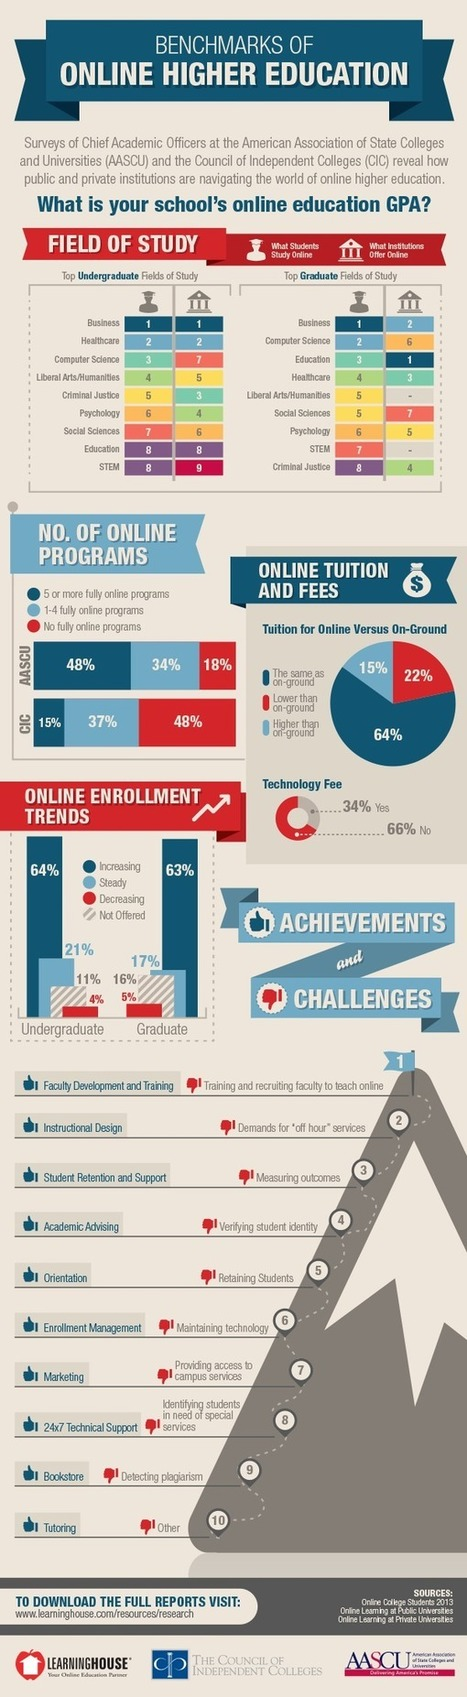 Benchmarks of Online Higher Education [INFOGRAPHIC] - The Learning House | Just Open Education or MOOCs? | Scoop.it